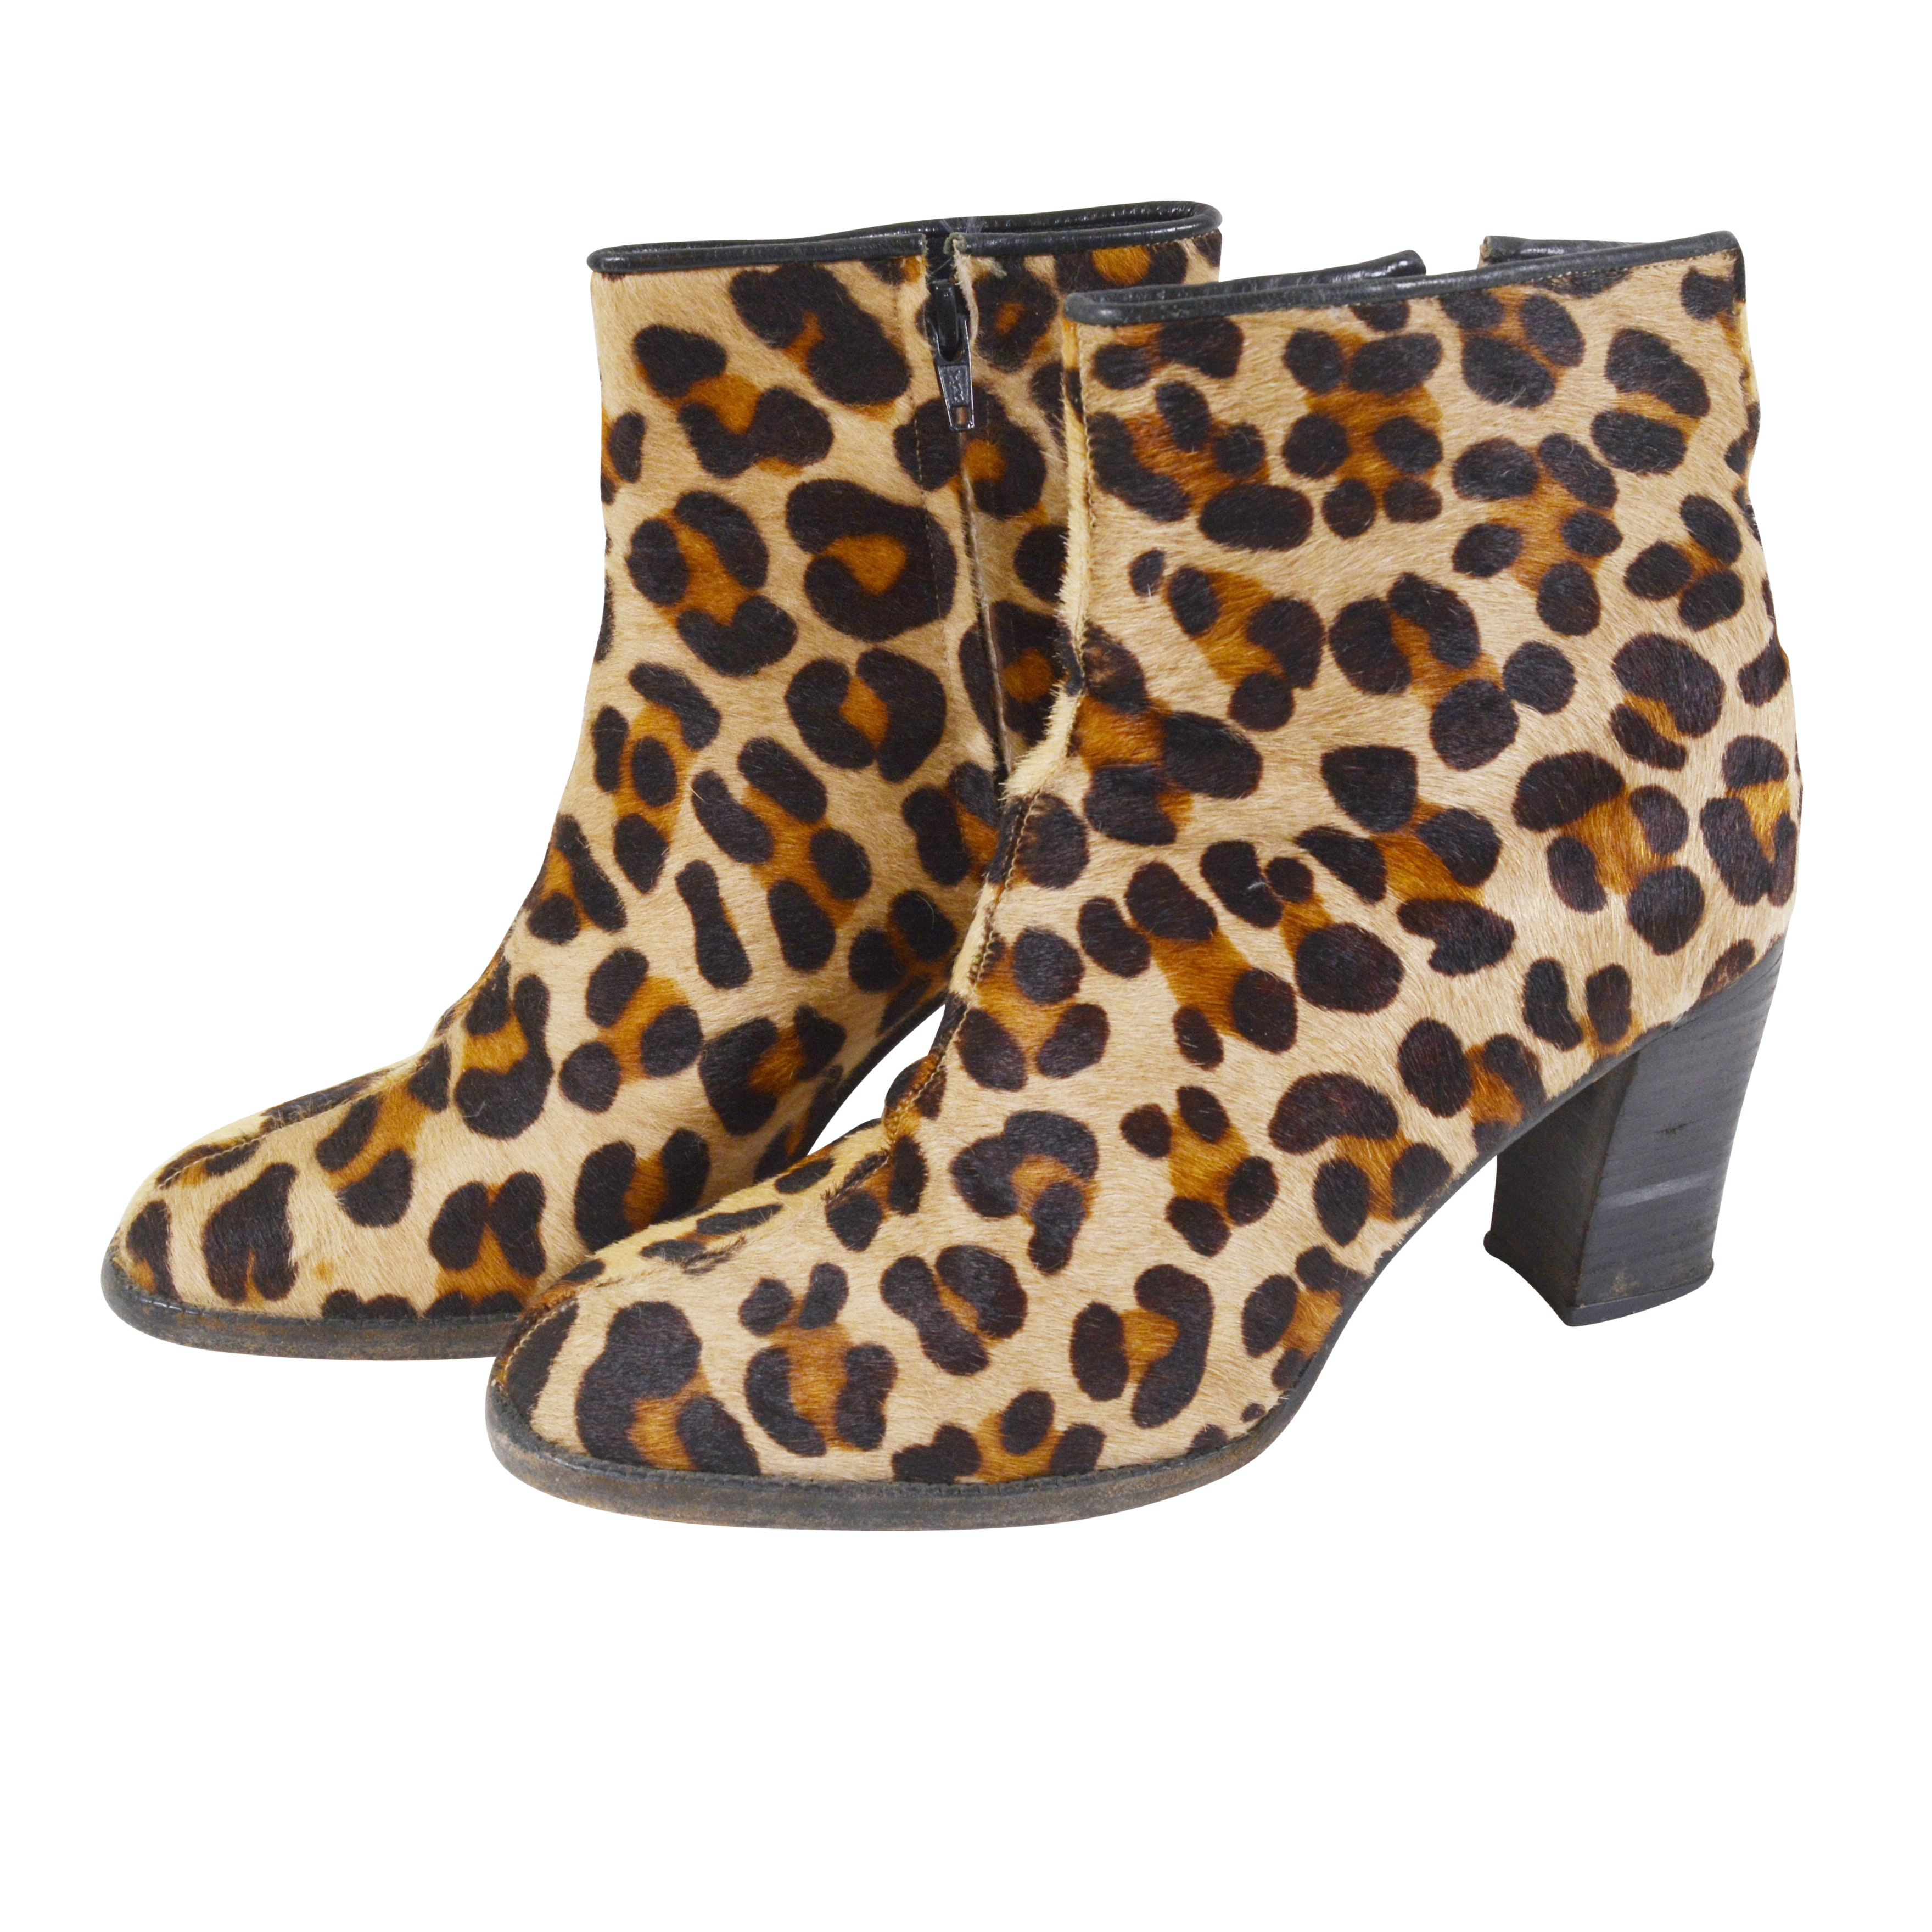 American Way Leopard Print Calf Hair Heeled Ankle Boots